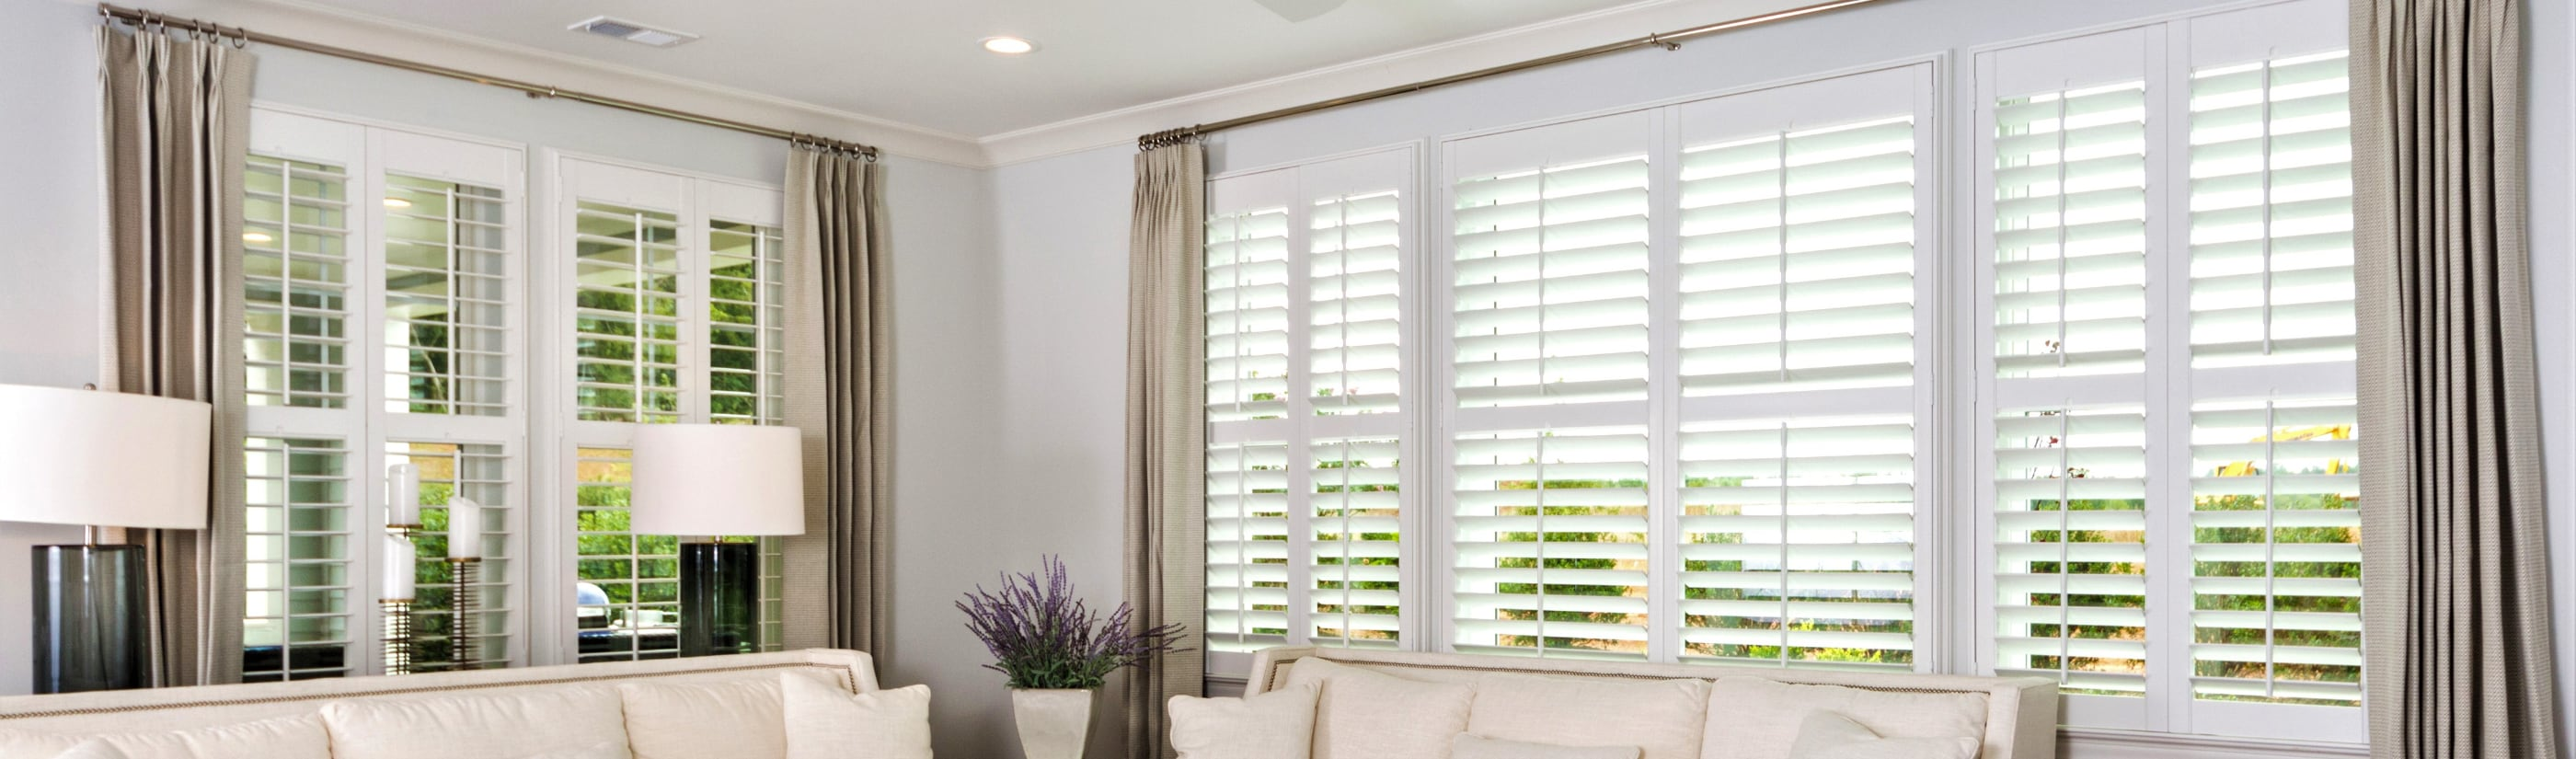 Polywood Shutters Paints In Indianapolis